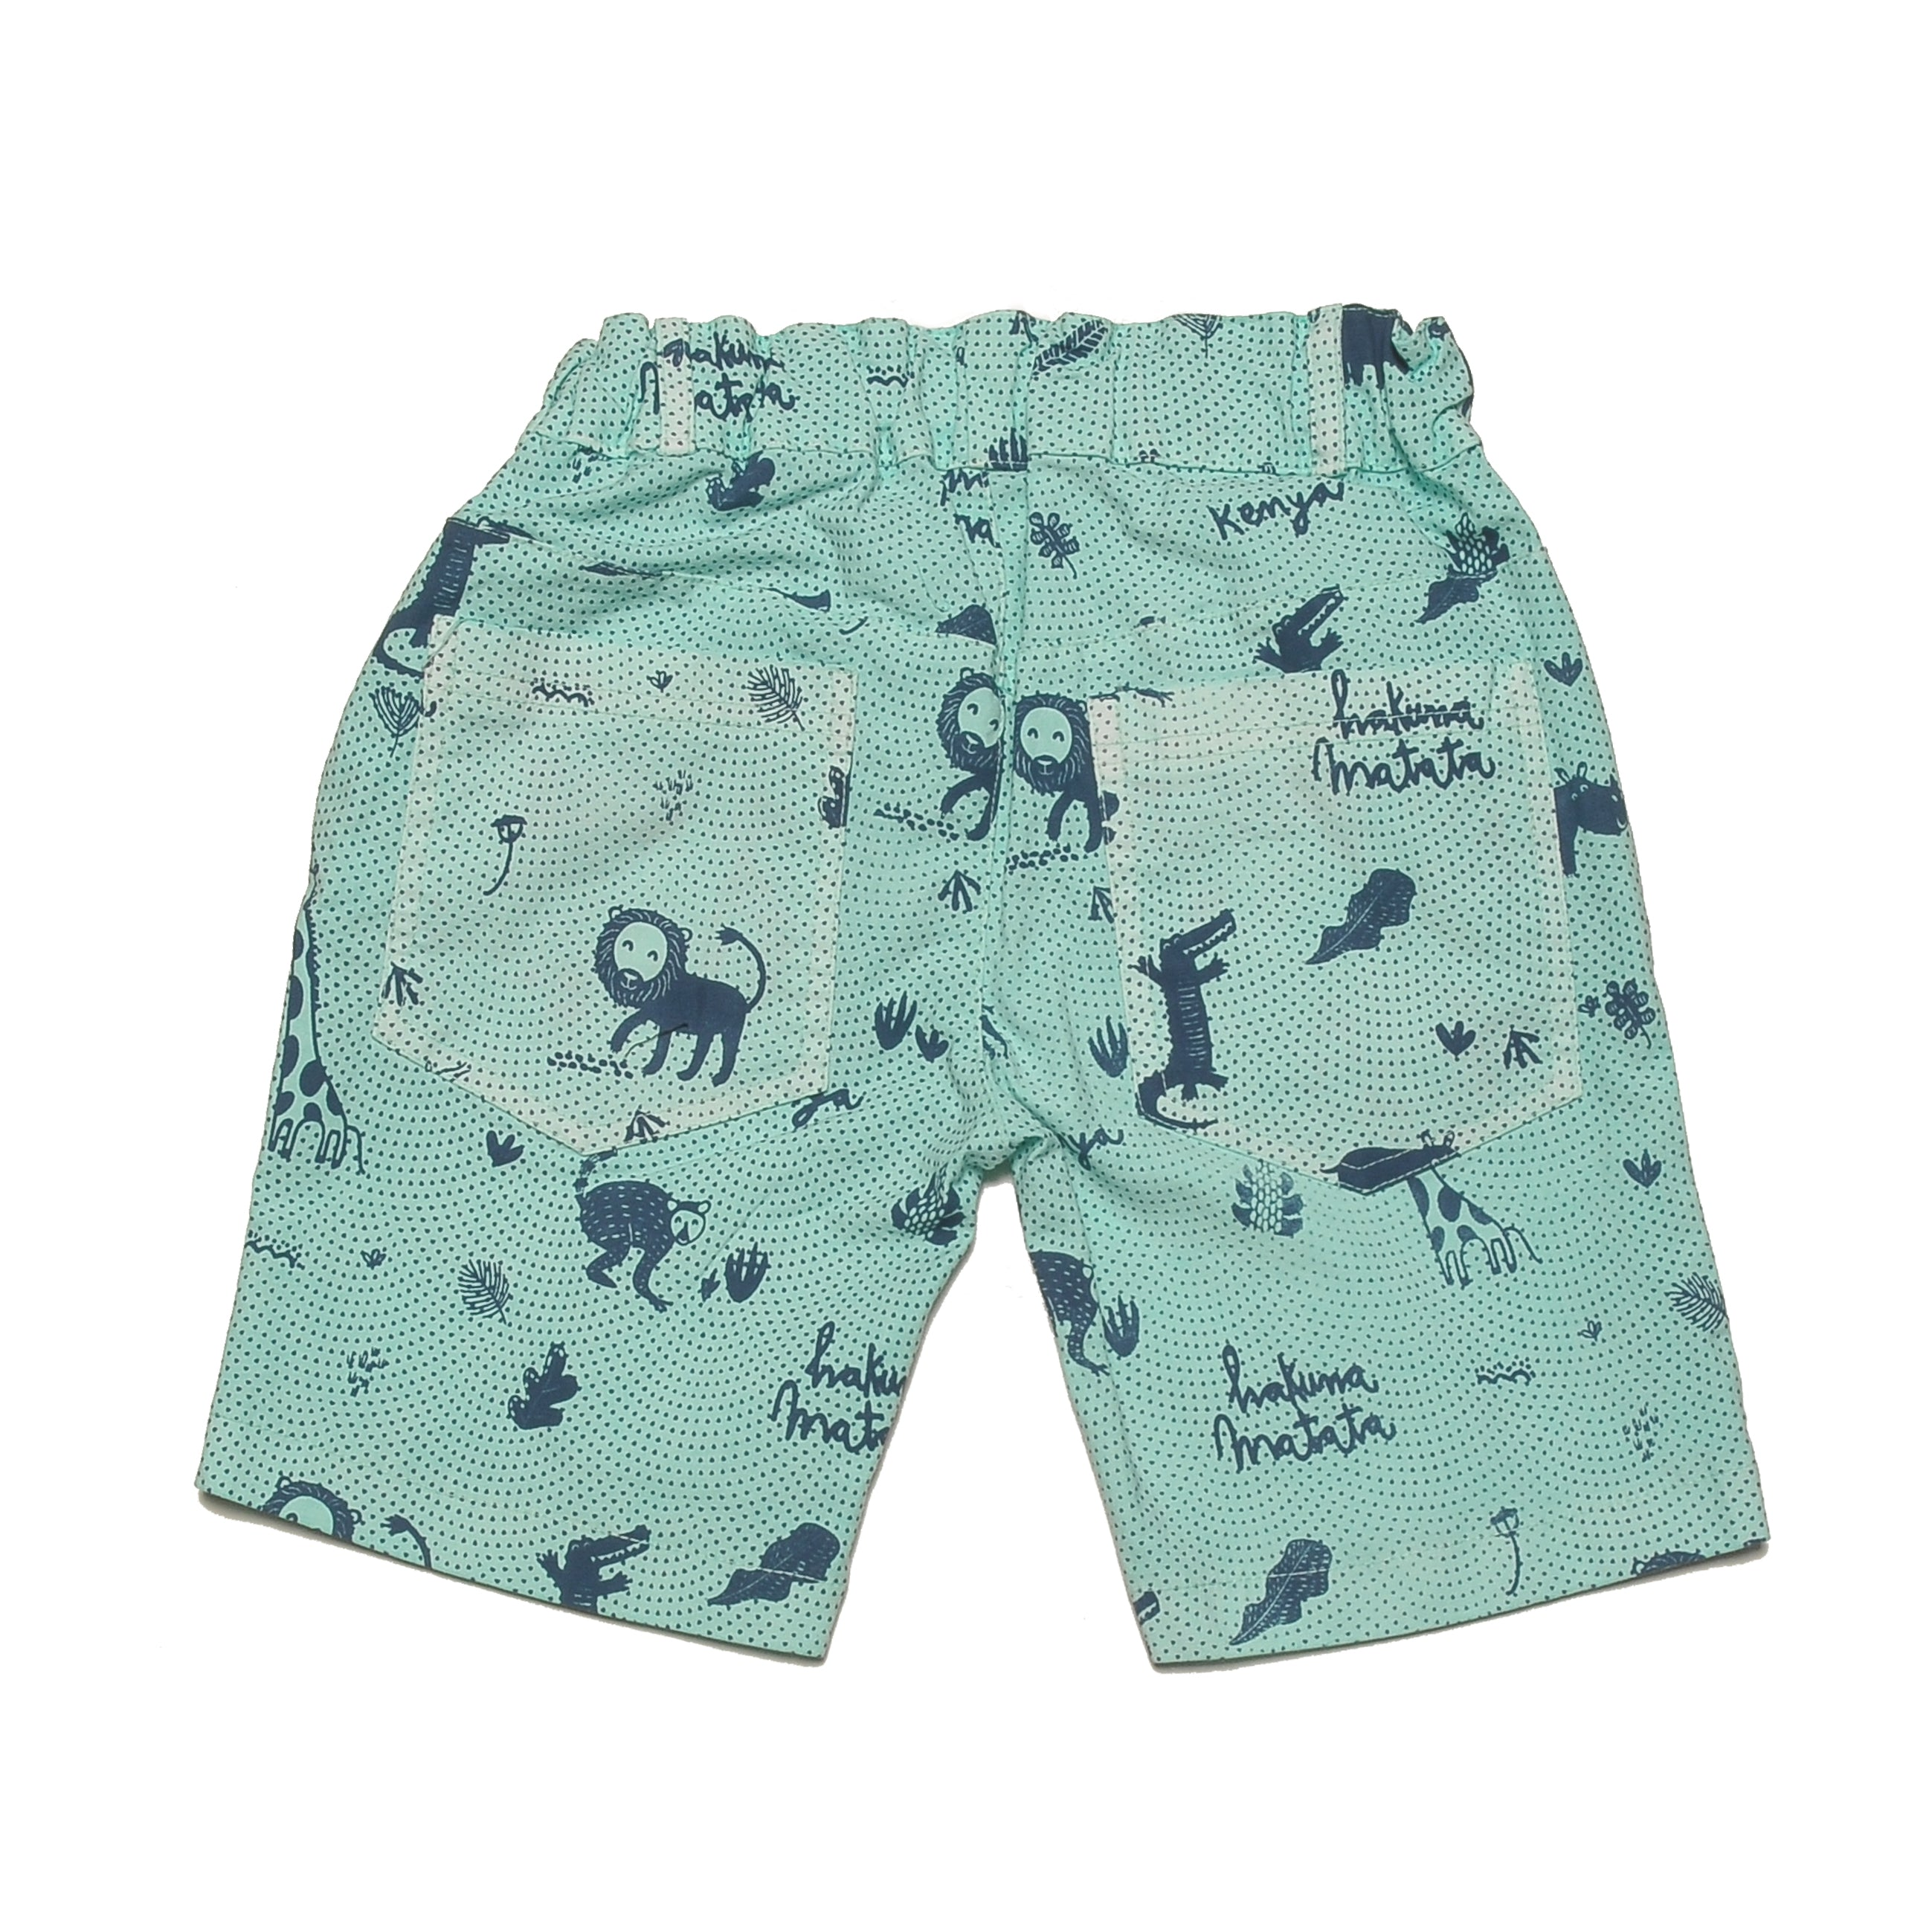 ANCLA SEA WATER SHORT